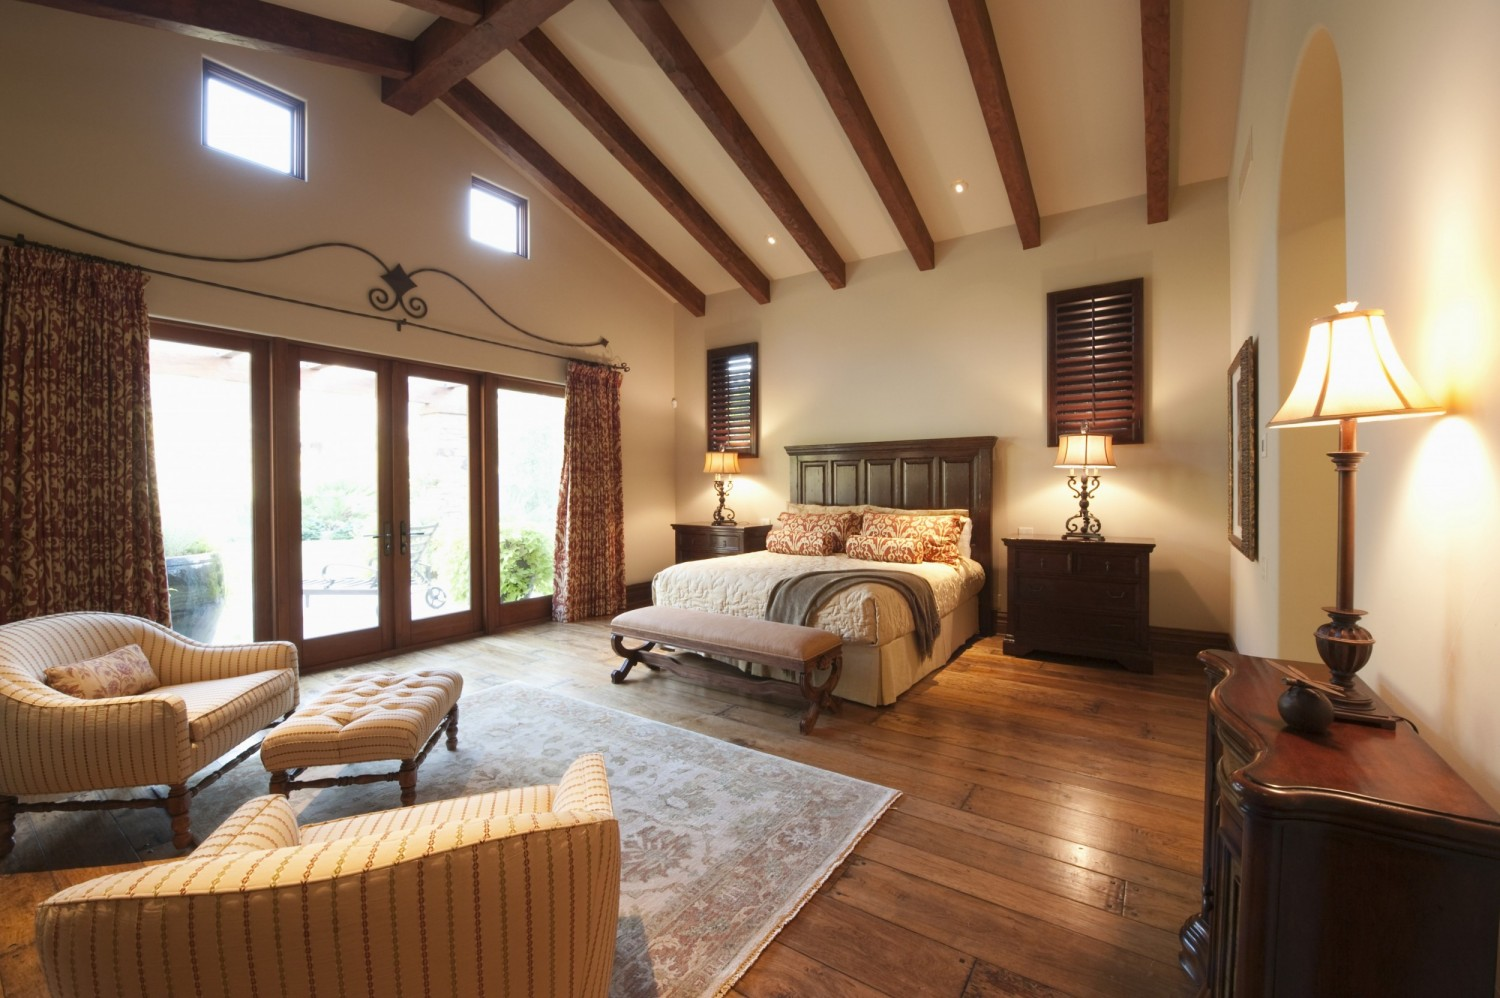 Spacious bedroom with beamed wooden ceiling